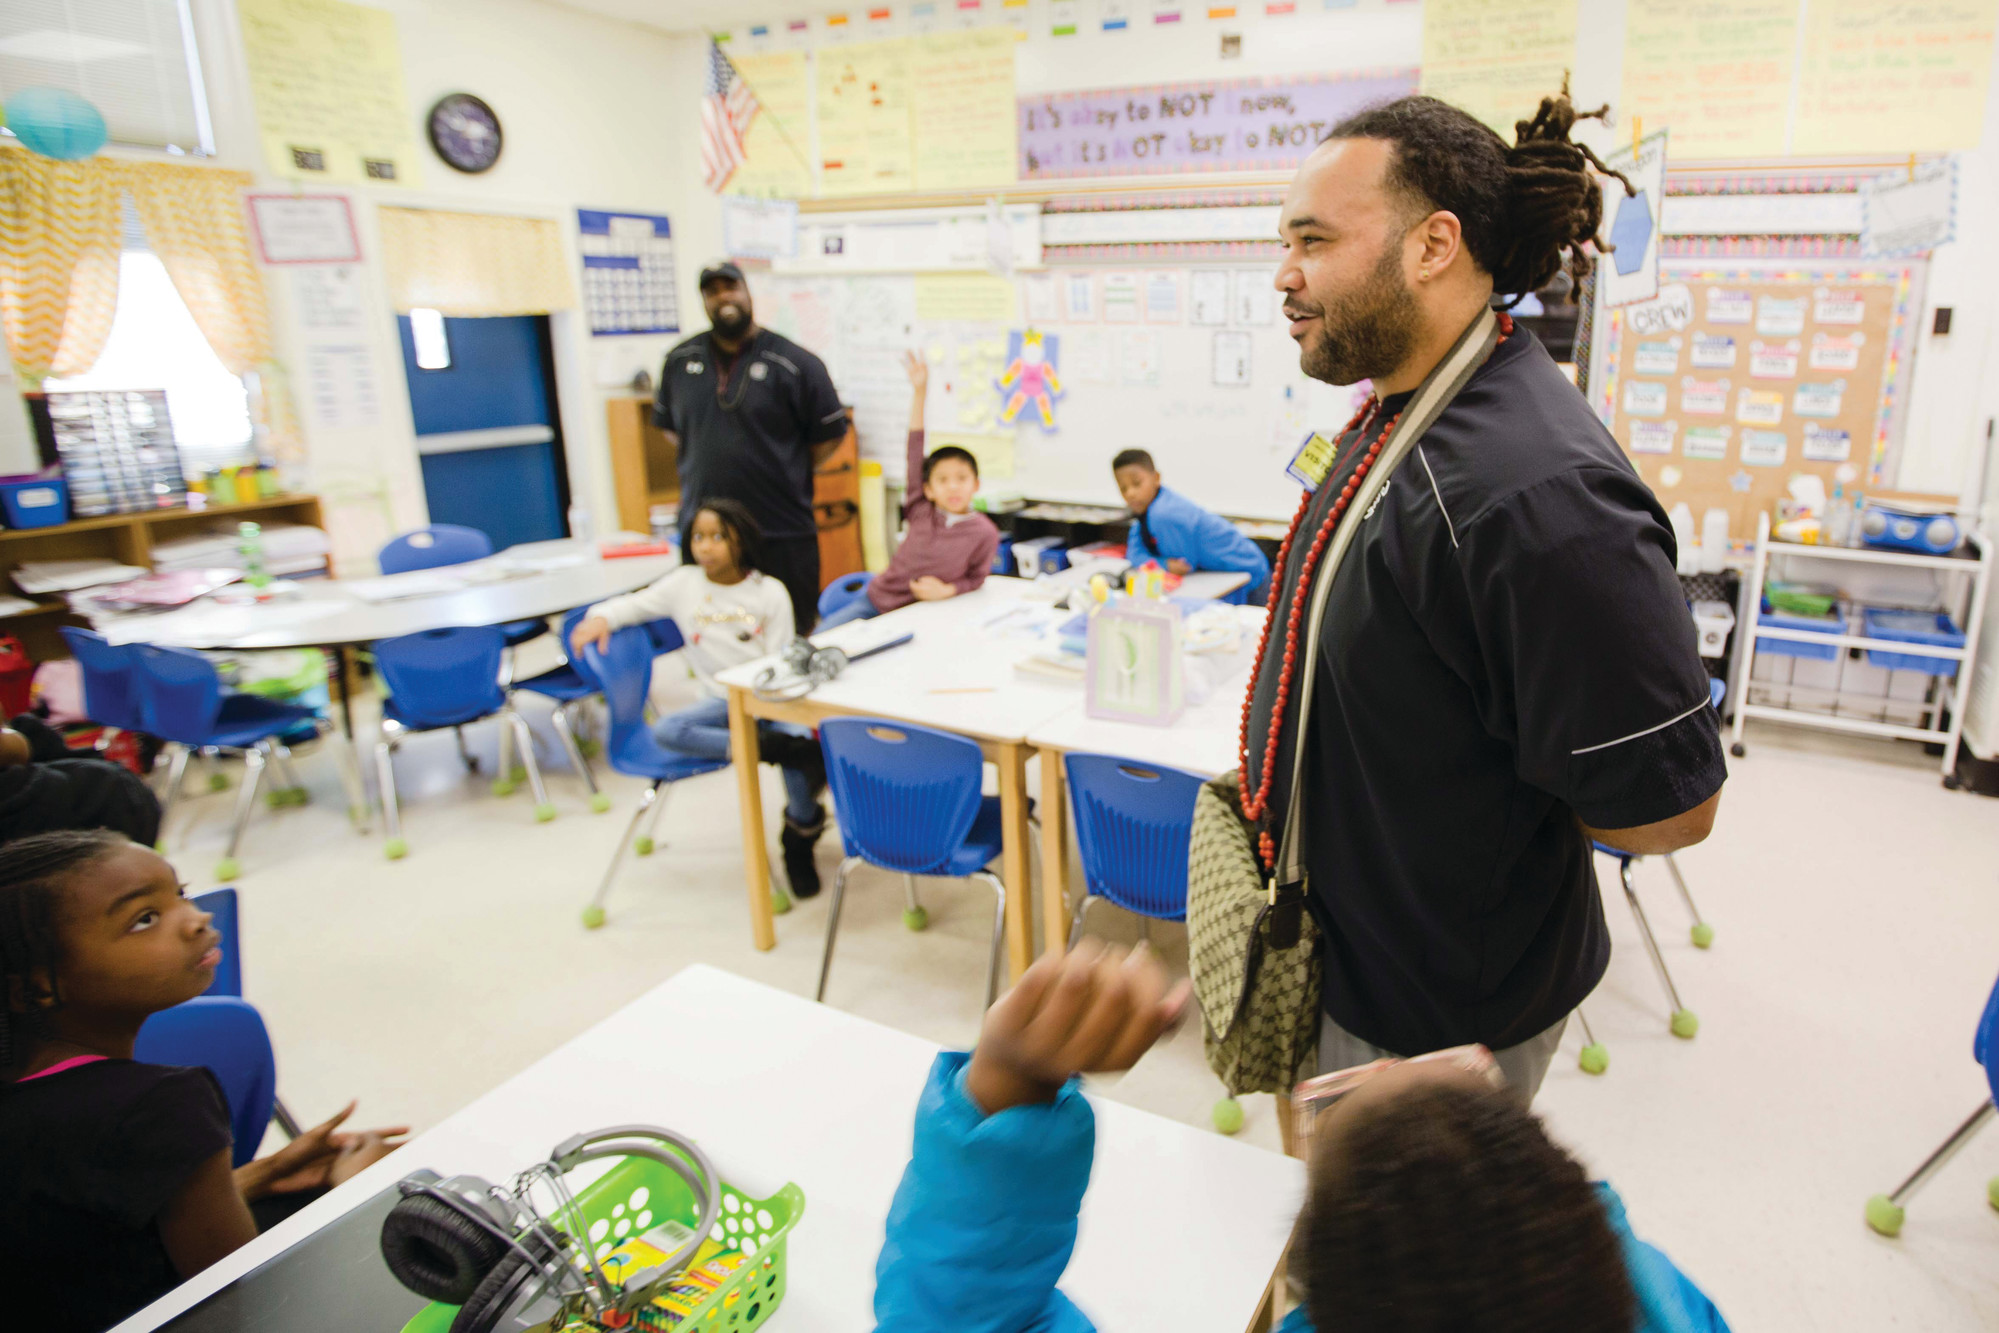 Former USC football player Langston Moore talks to students in a class at Willow Drive Elementary School on Friday. Former teammate Preston Thorne, who co-authored #JustaChicken with Moore, stands in the background.